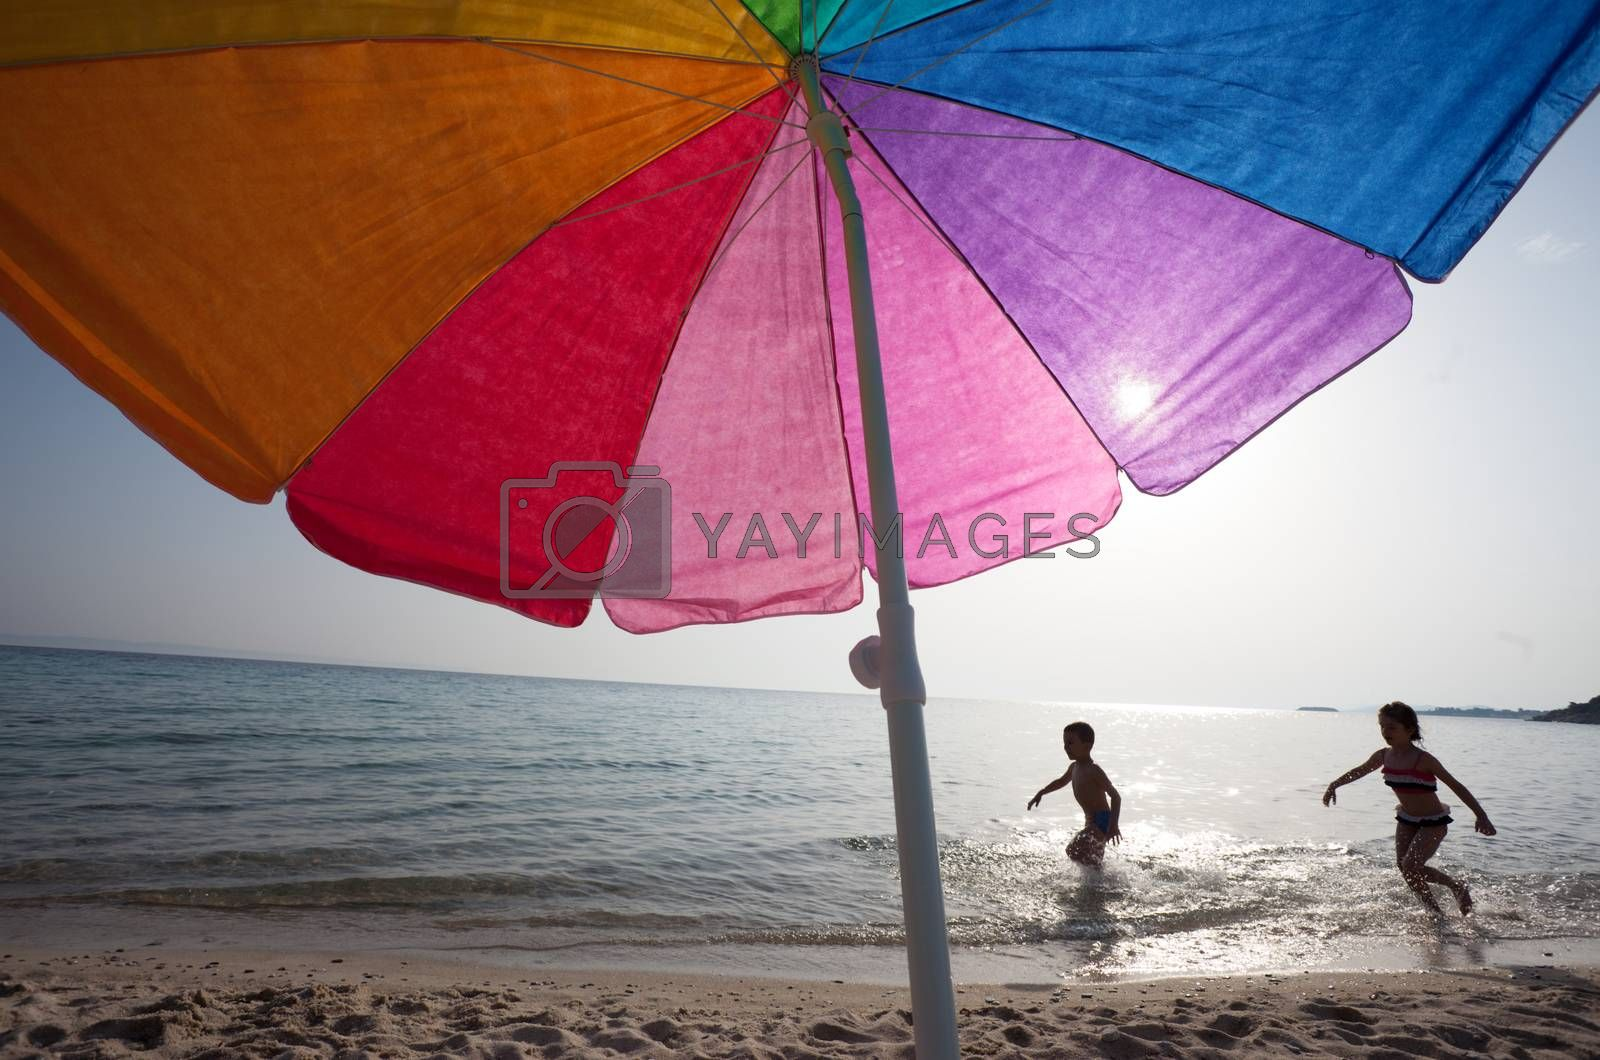 Couple of kids around 6 are playing in the water under the sun, colorful umbrella in foreground.